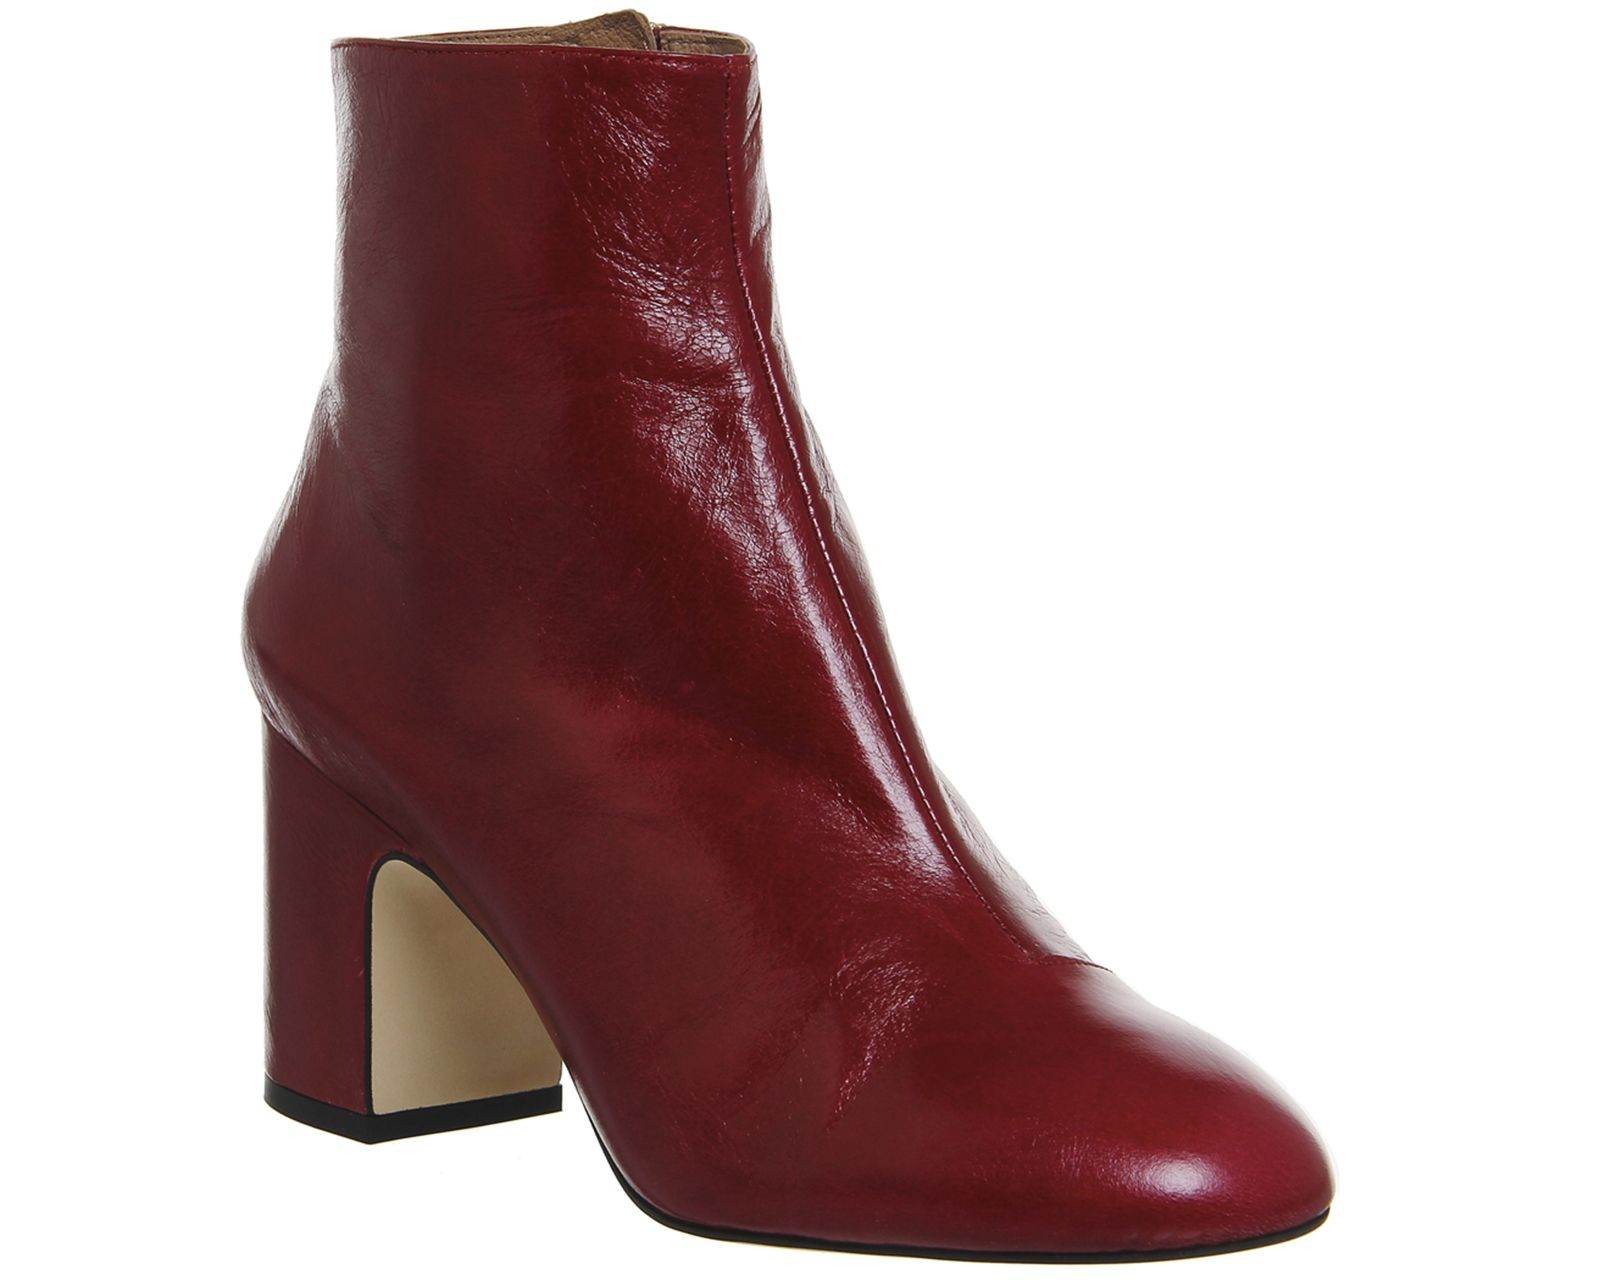 Office Laughter Block Heel Ankle Boots Red Leather - Ankle Boots